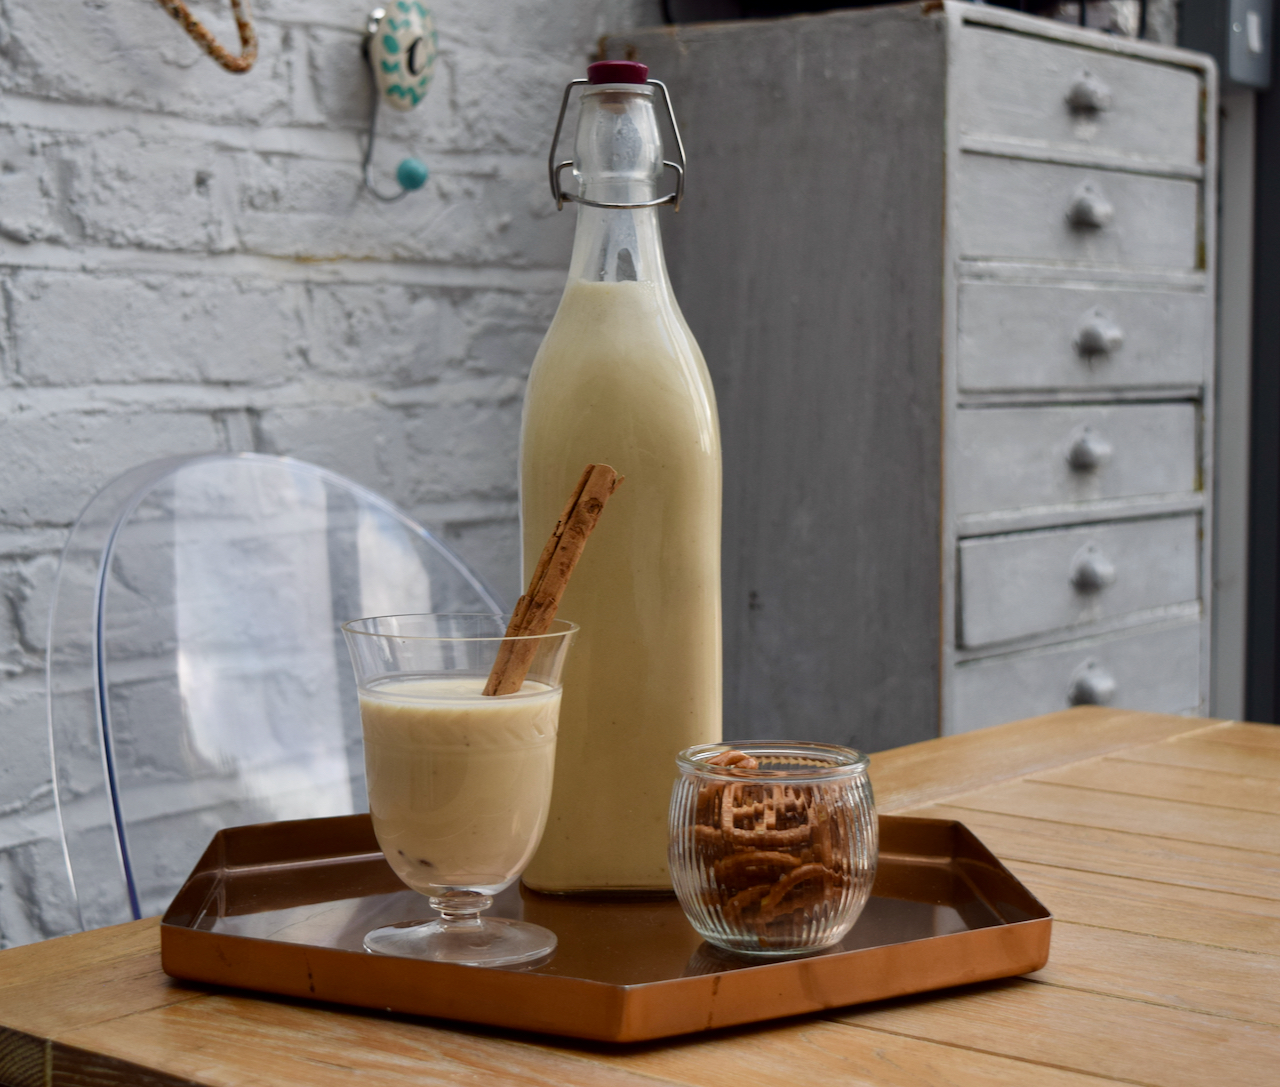 Coquito recipe from Lucy Loves Food Blog